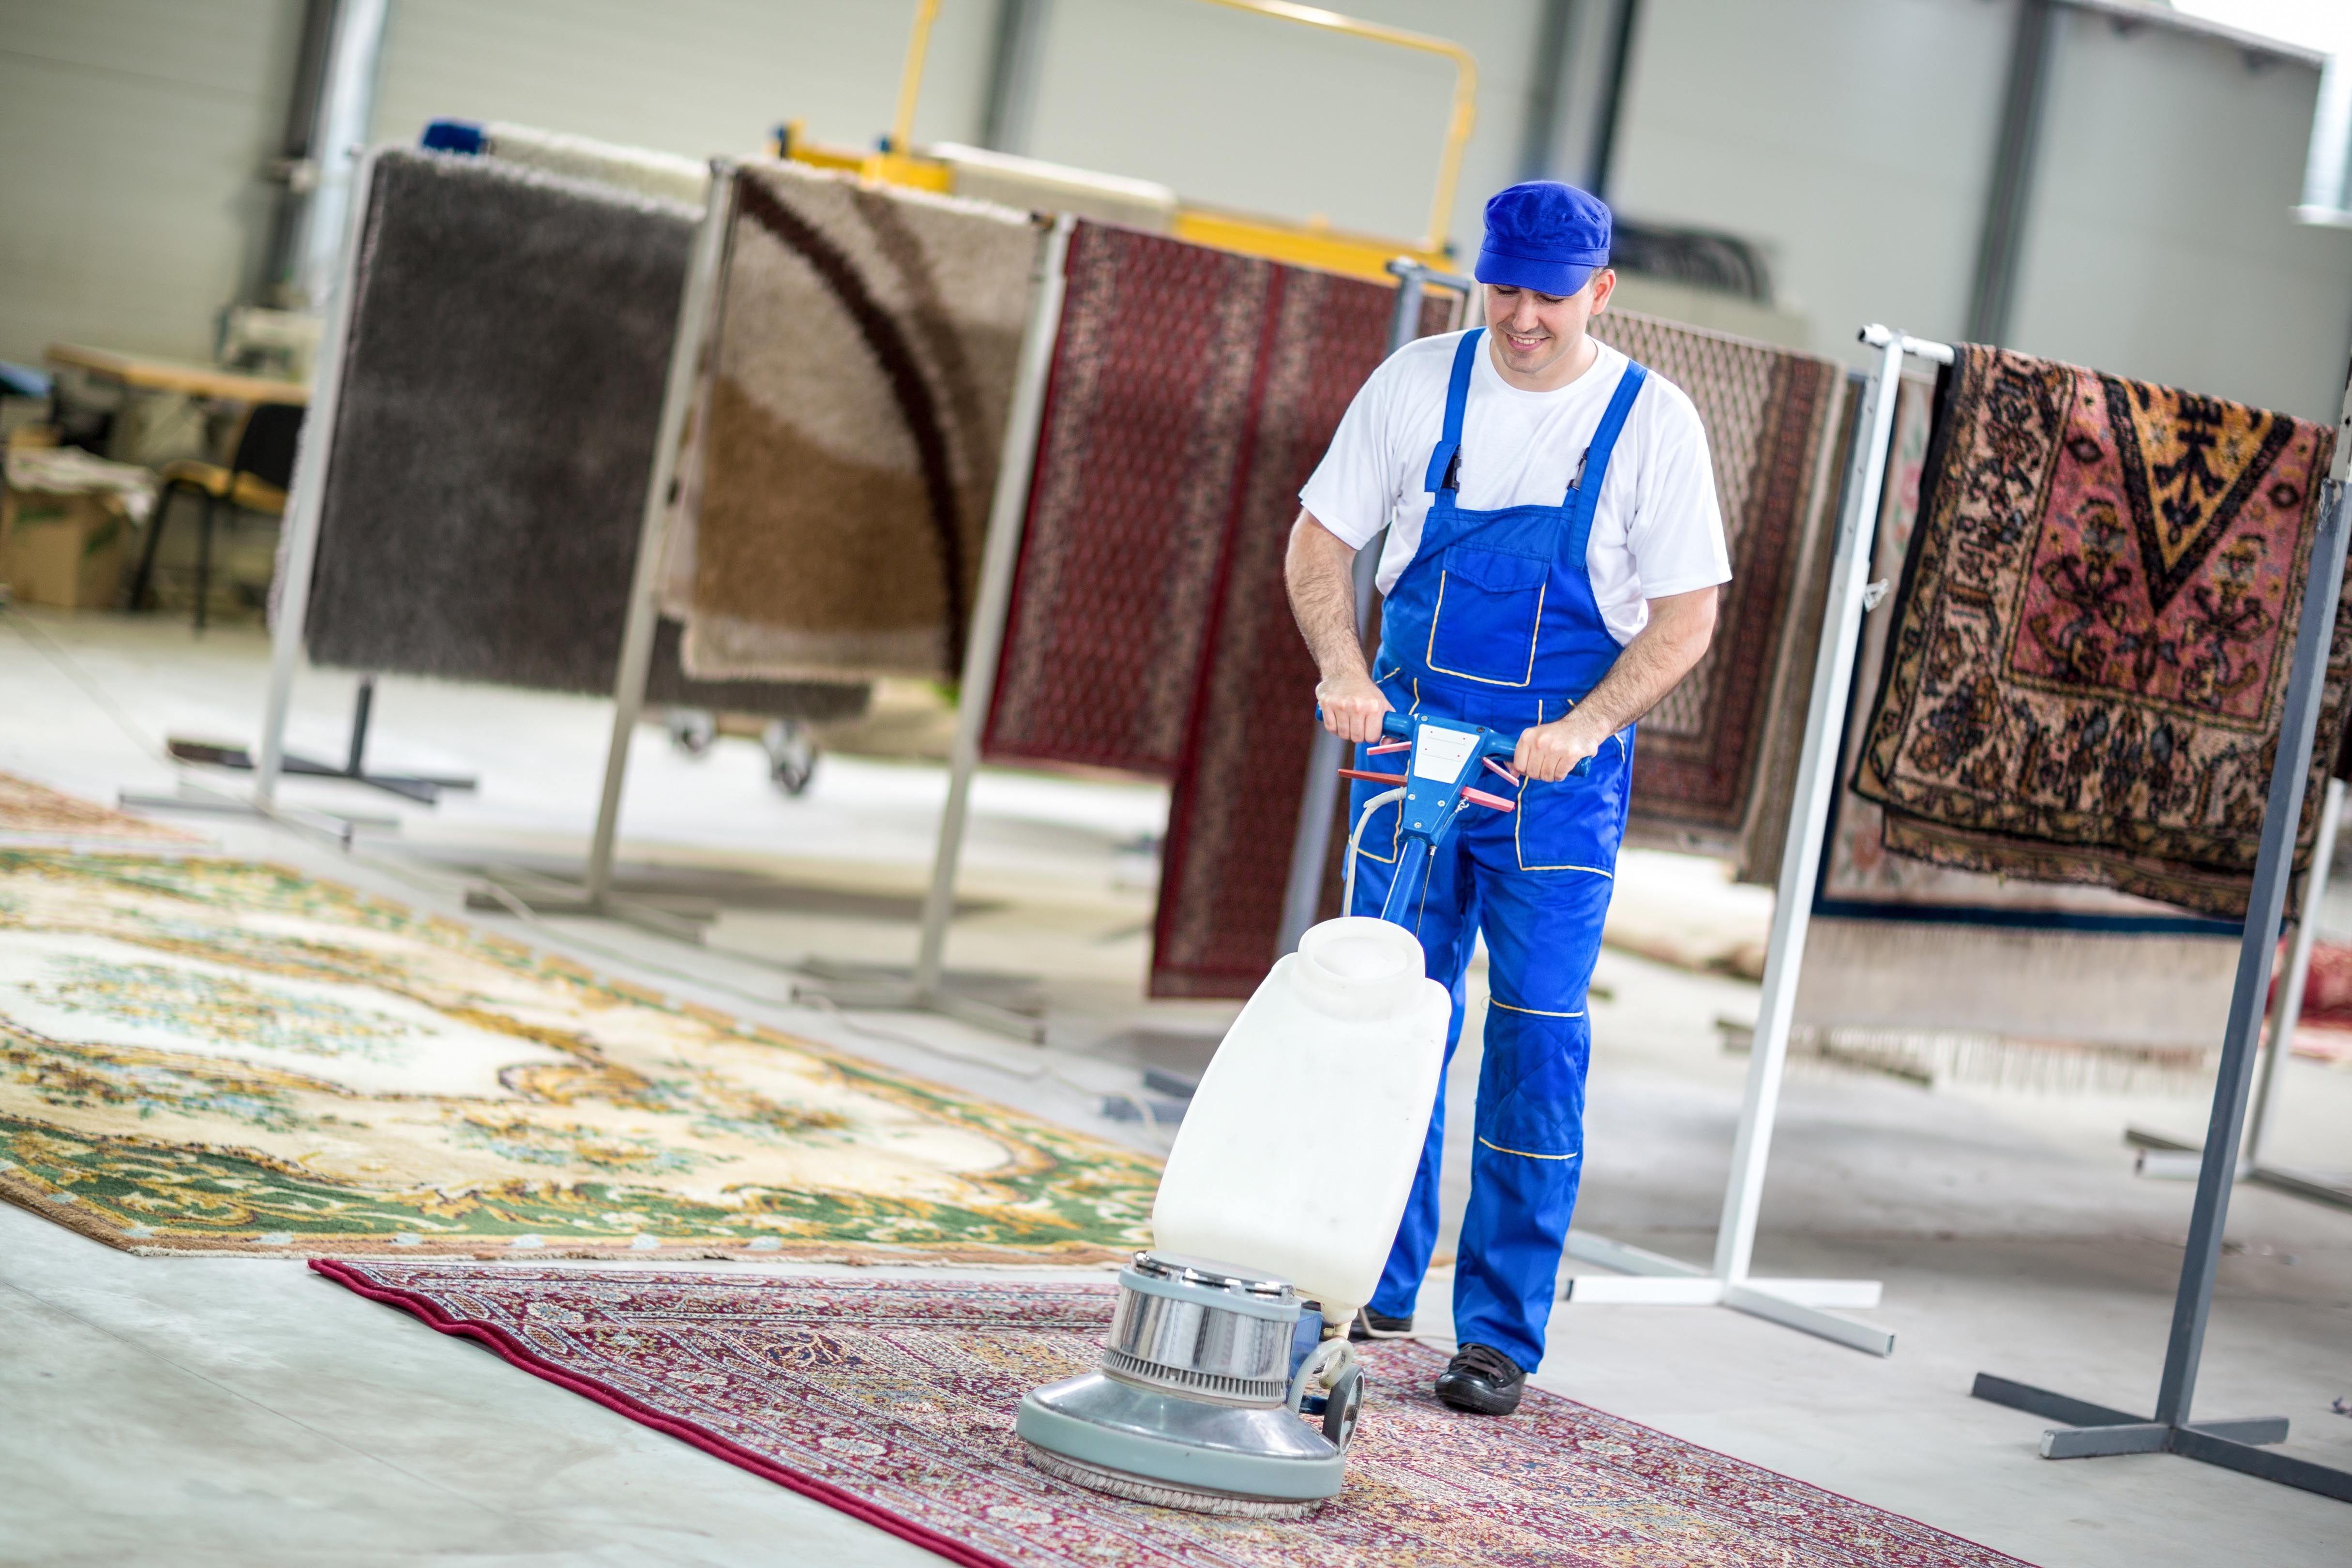 Costeffective Carpet Cleaning Machine Hire By Priory Dry